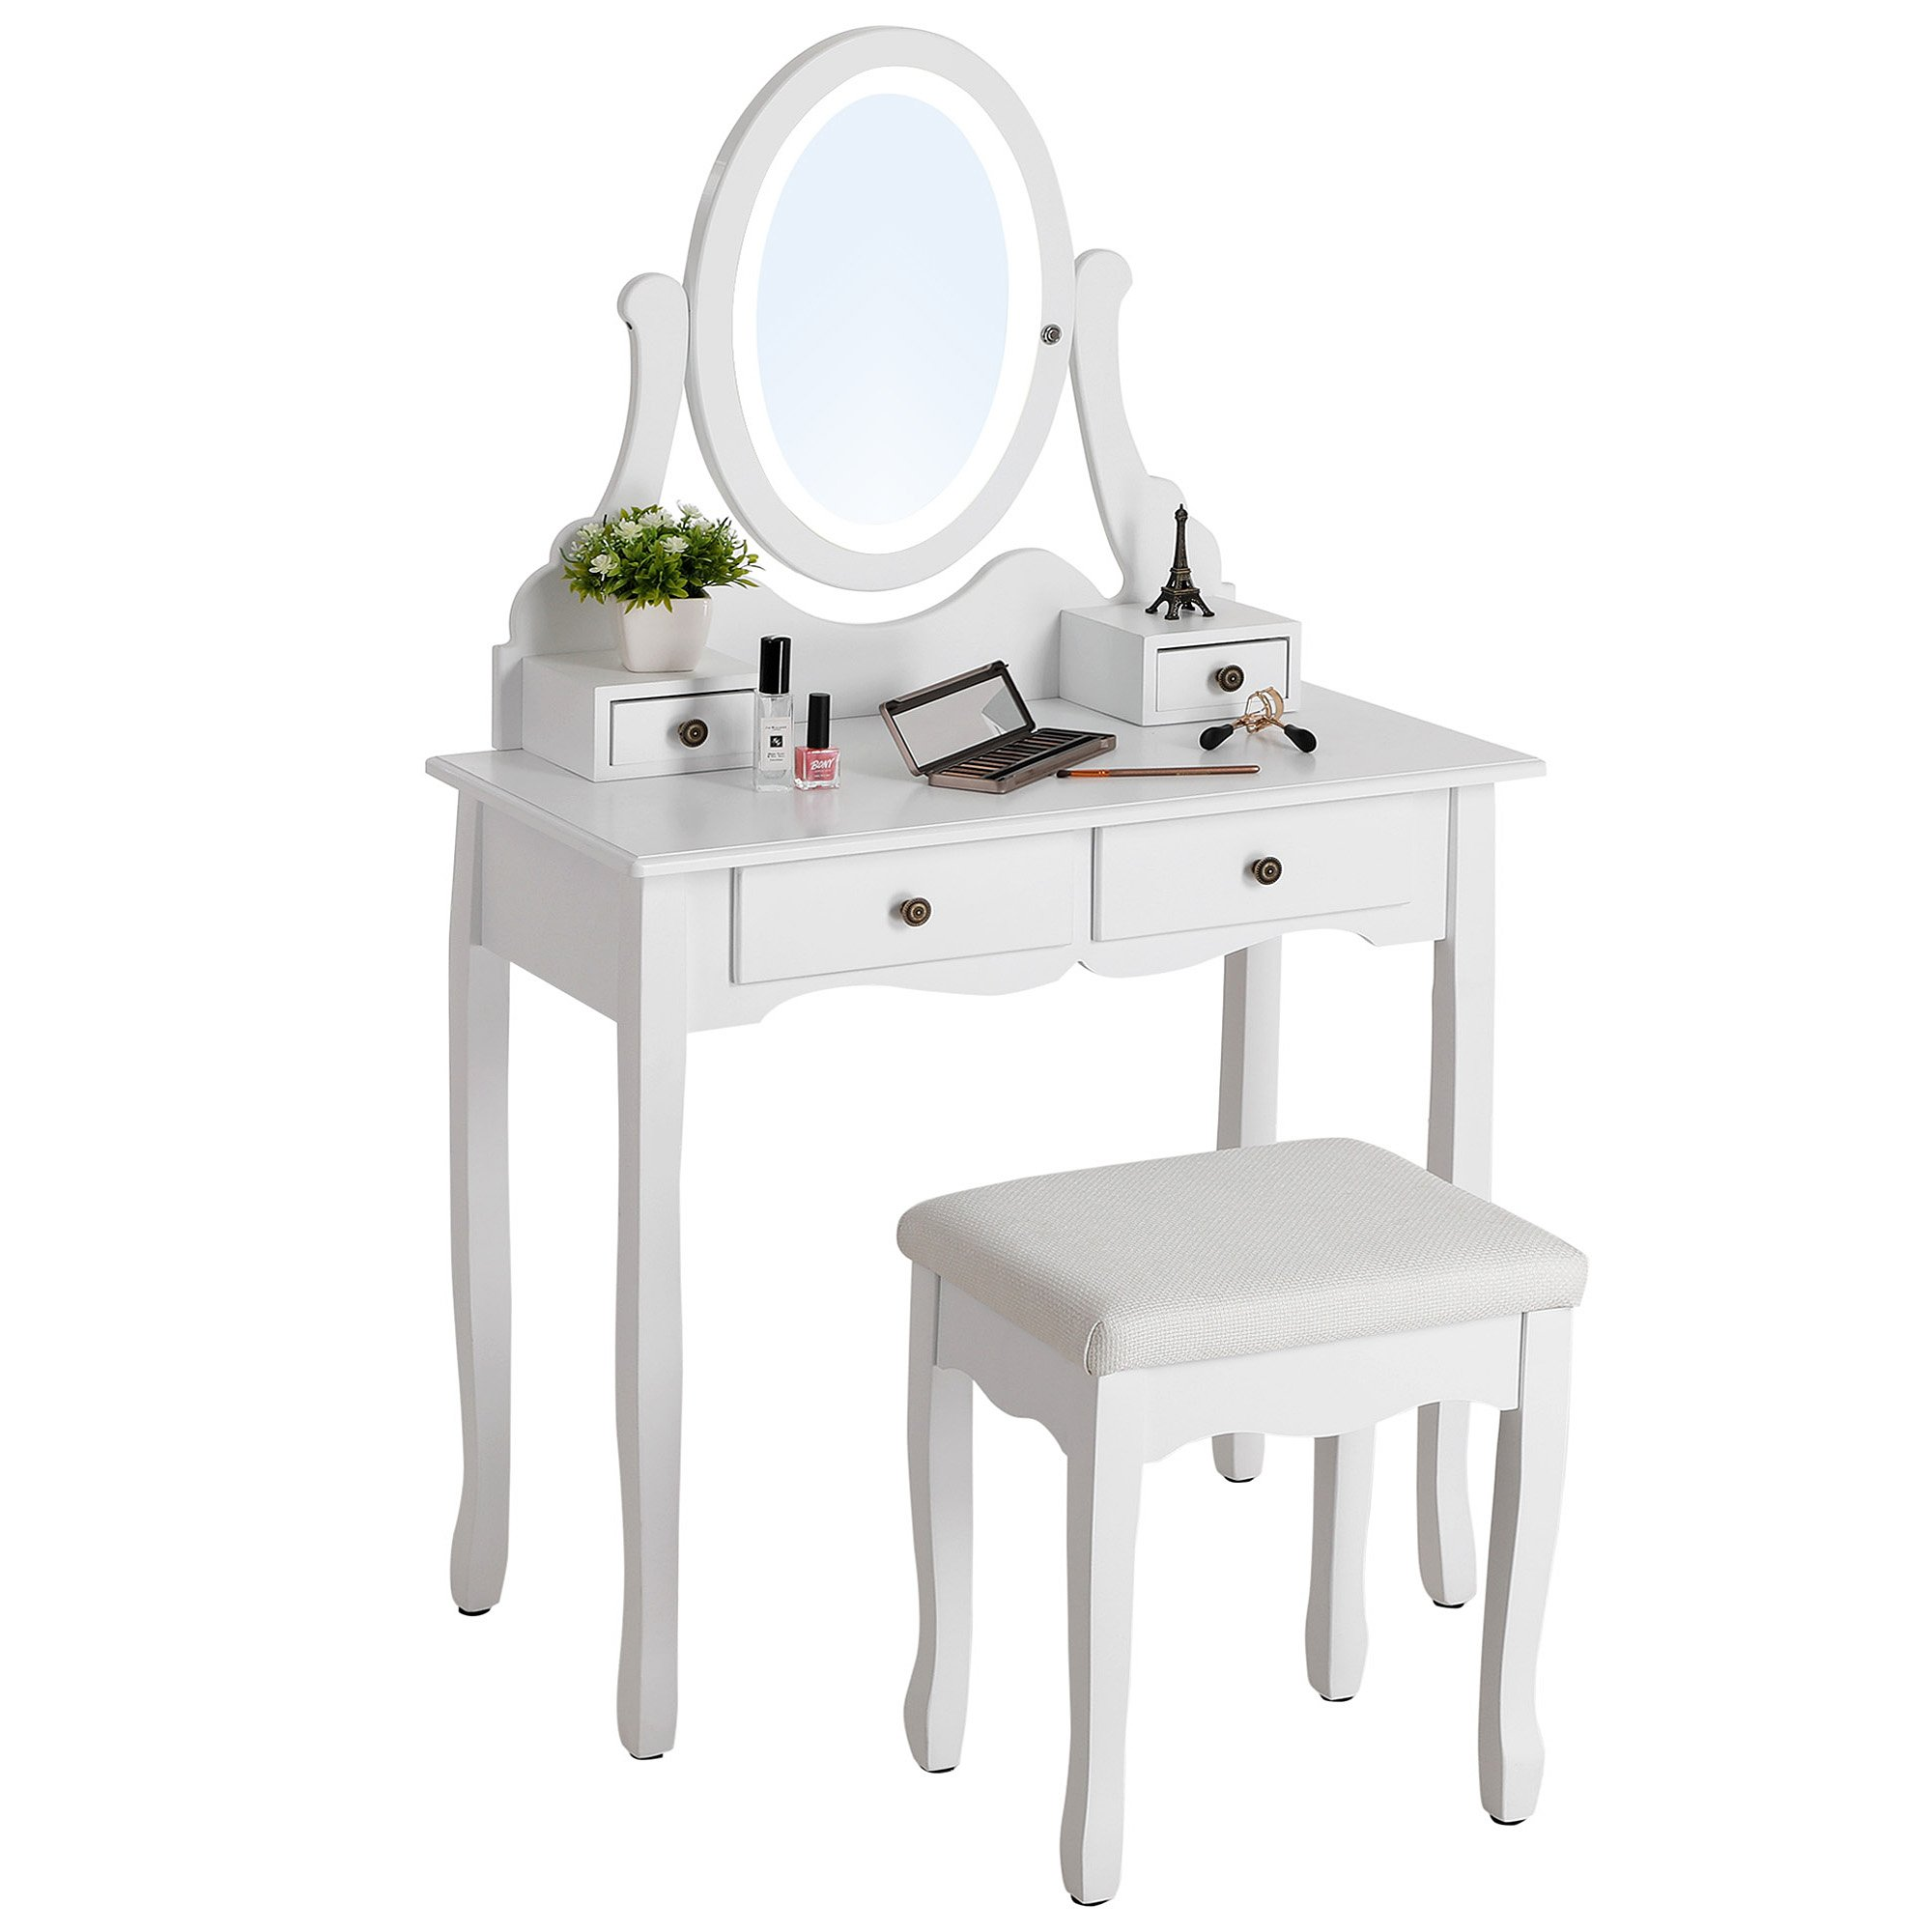 SONGMICS Vanity Table Set with Dimmable LED Lights and Mirror Makeup Dressing Table with 4 Drawers (2 Sets of Knobs) Cushioned Stool White URDT19W